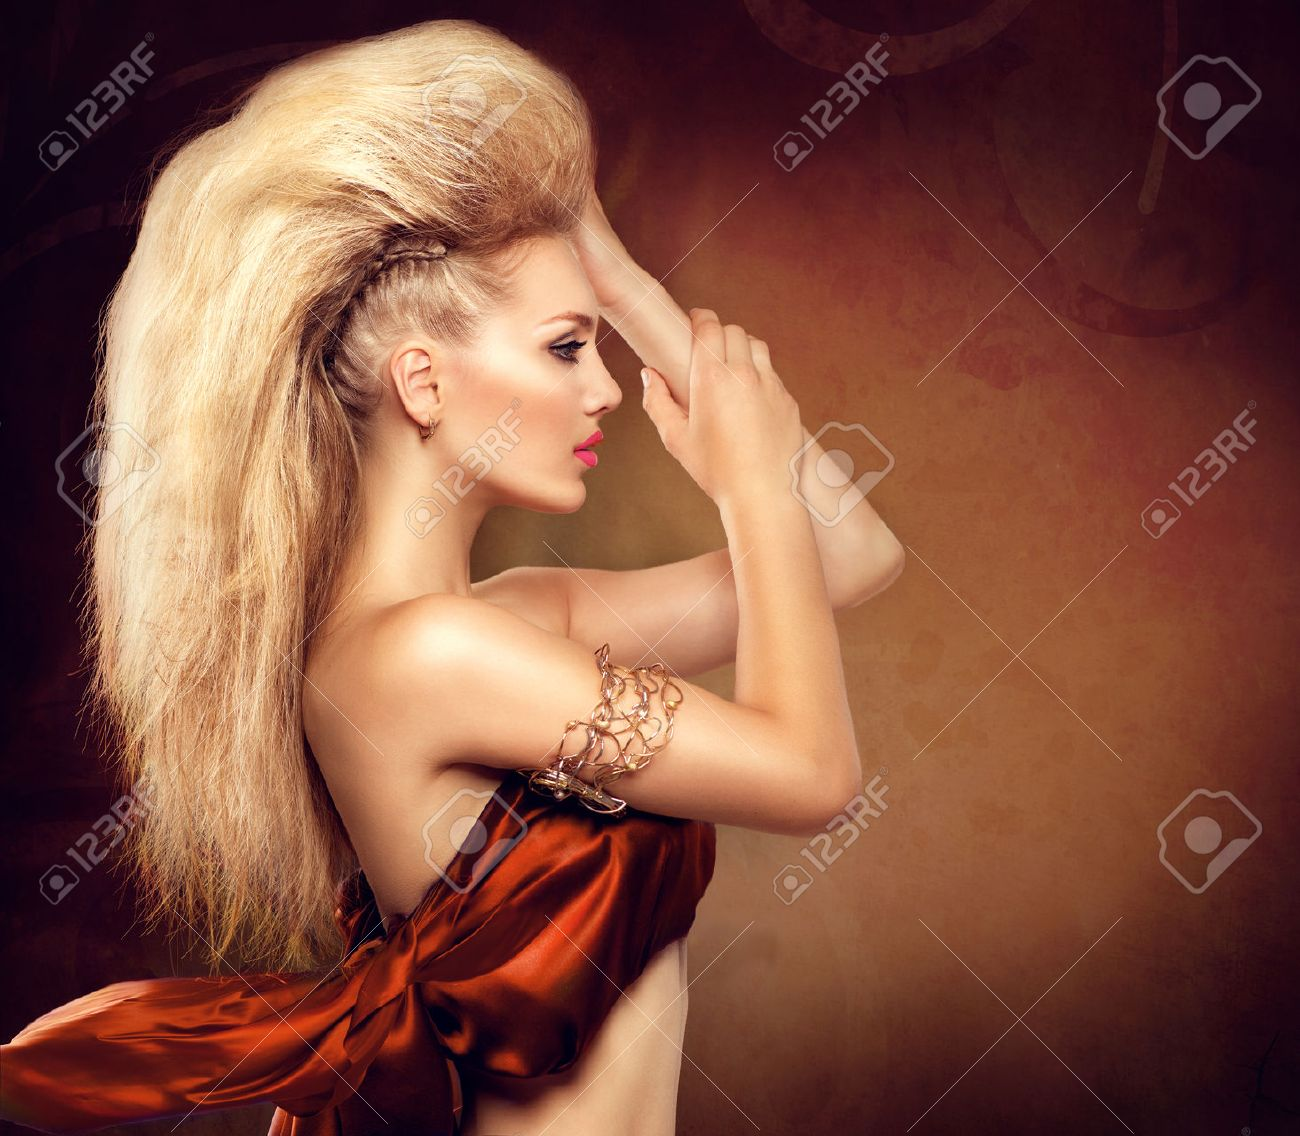 Phenomenal High Fashion Model Girl With Mohawk Hairstyle Stock Photo Picture Short Hairstyles For Black Women Fulllsitofus